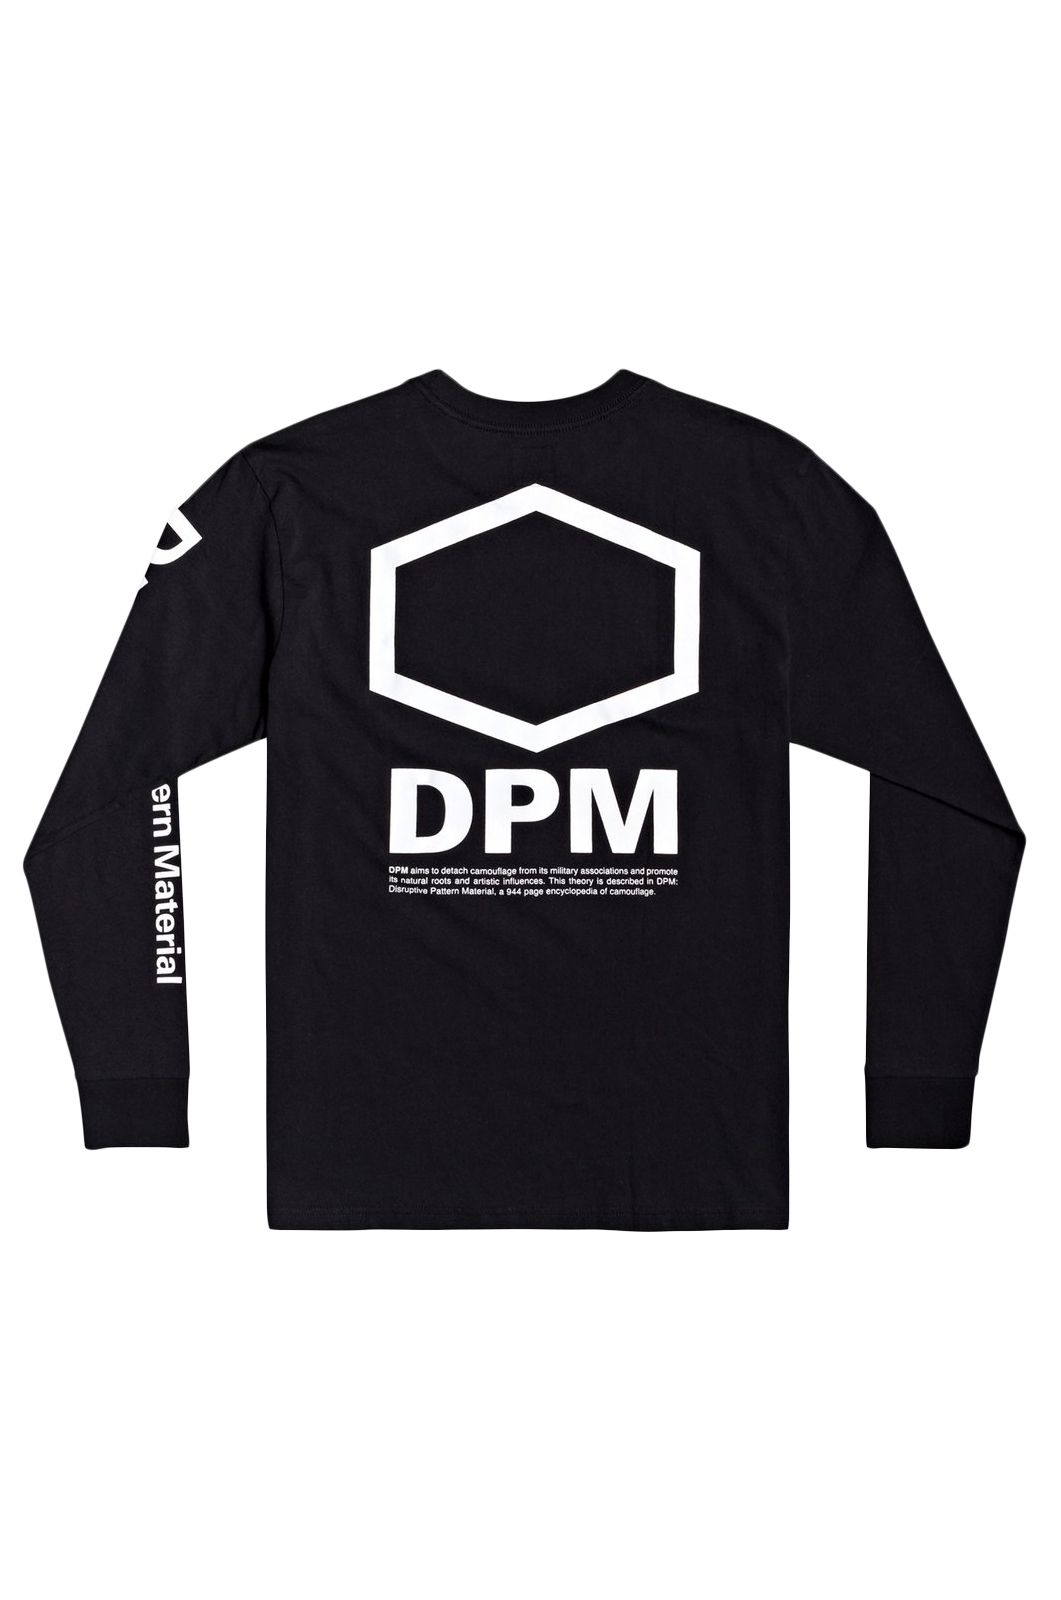 L-Sleeve RVCA DPM LONG SLEEVE TEE DPM Black